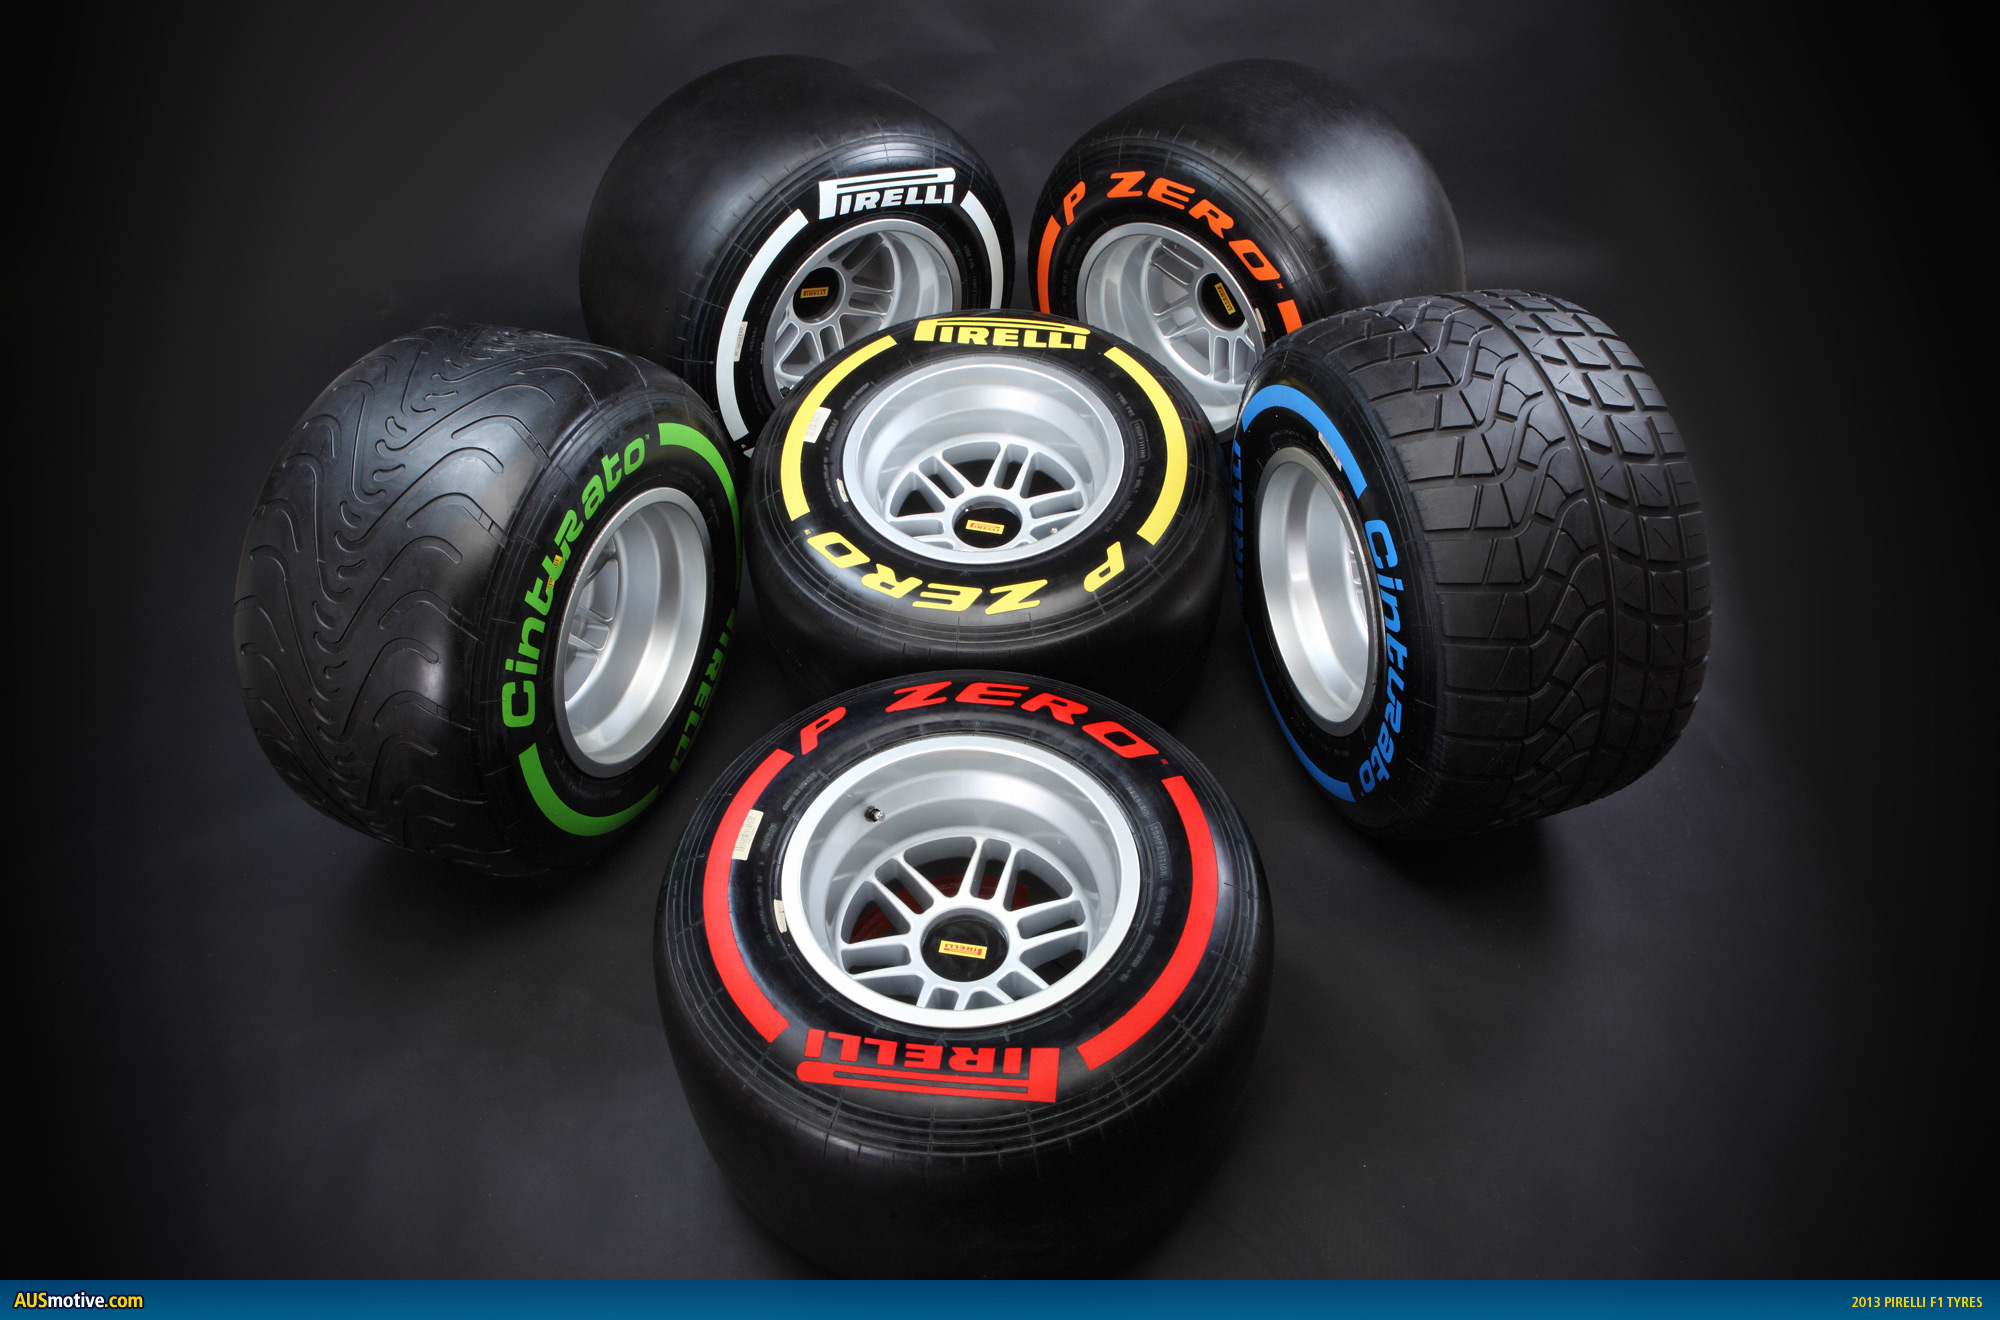 Quick Reference Guide To The 2013 F1 Season